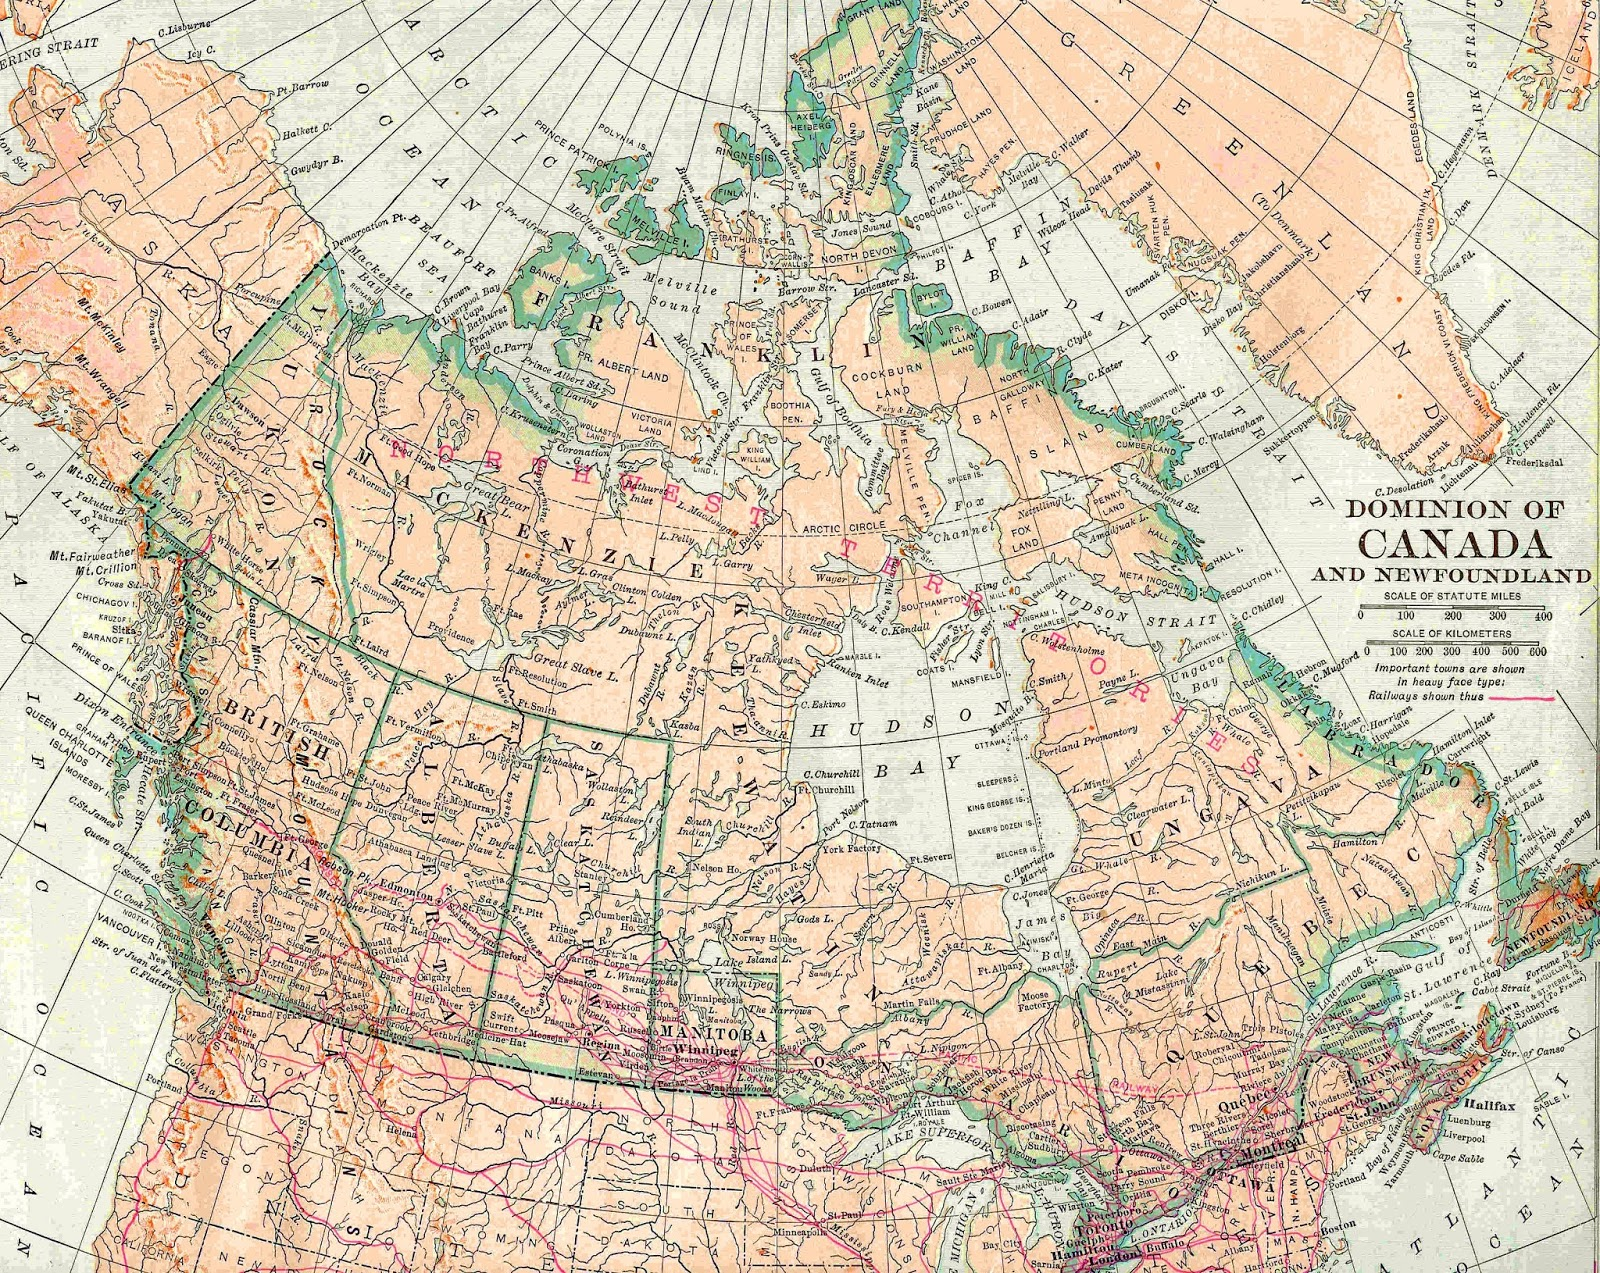 Antique Images Vintage Map Background 1913 Map Graphic of Canada 1600x1273